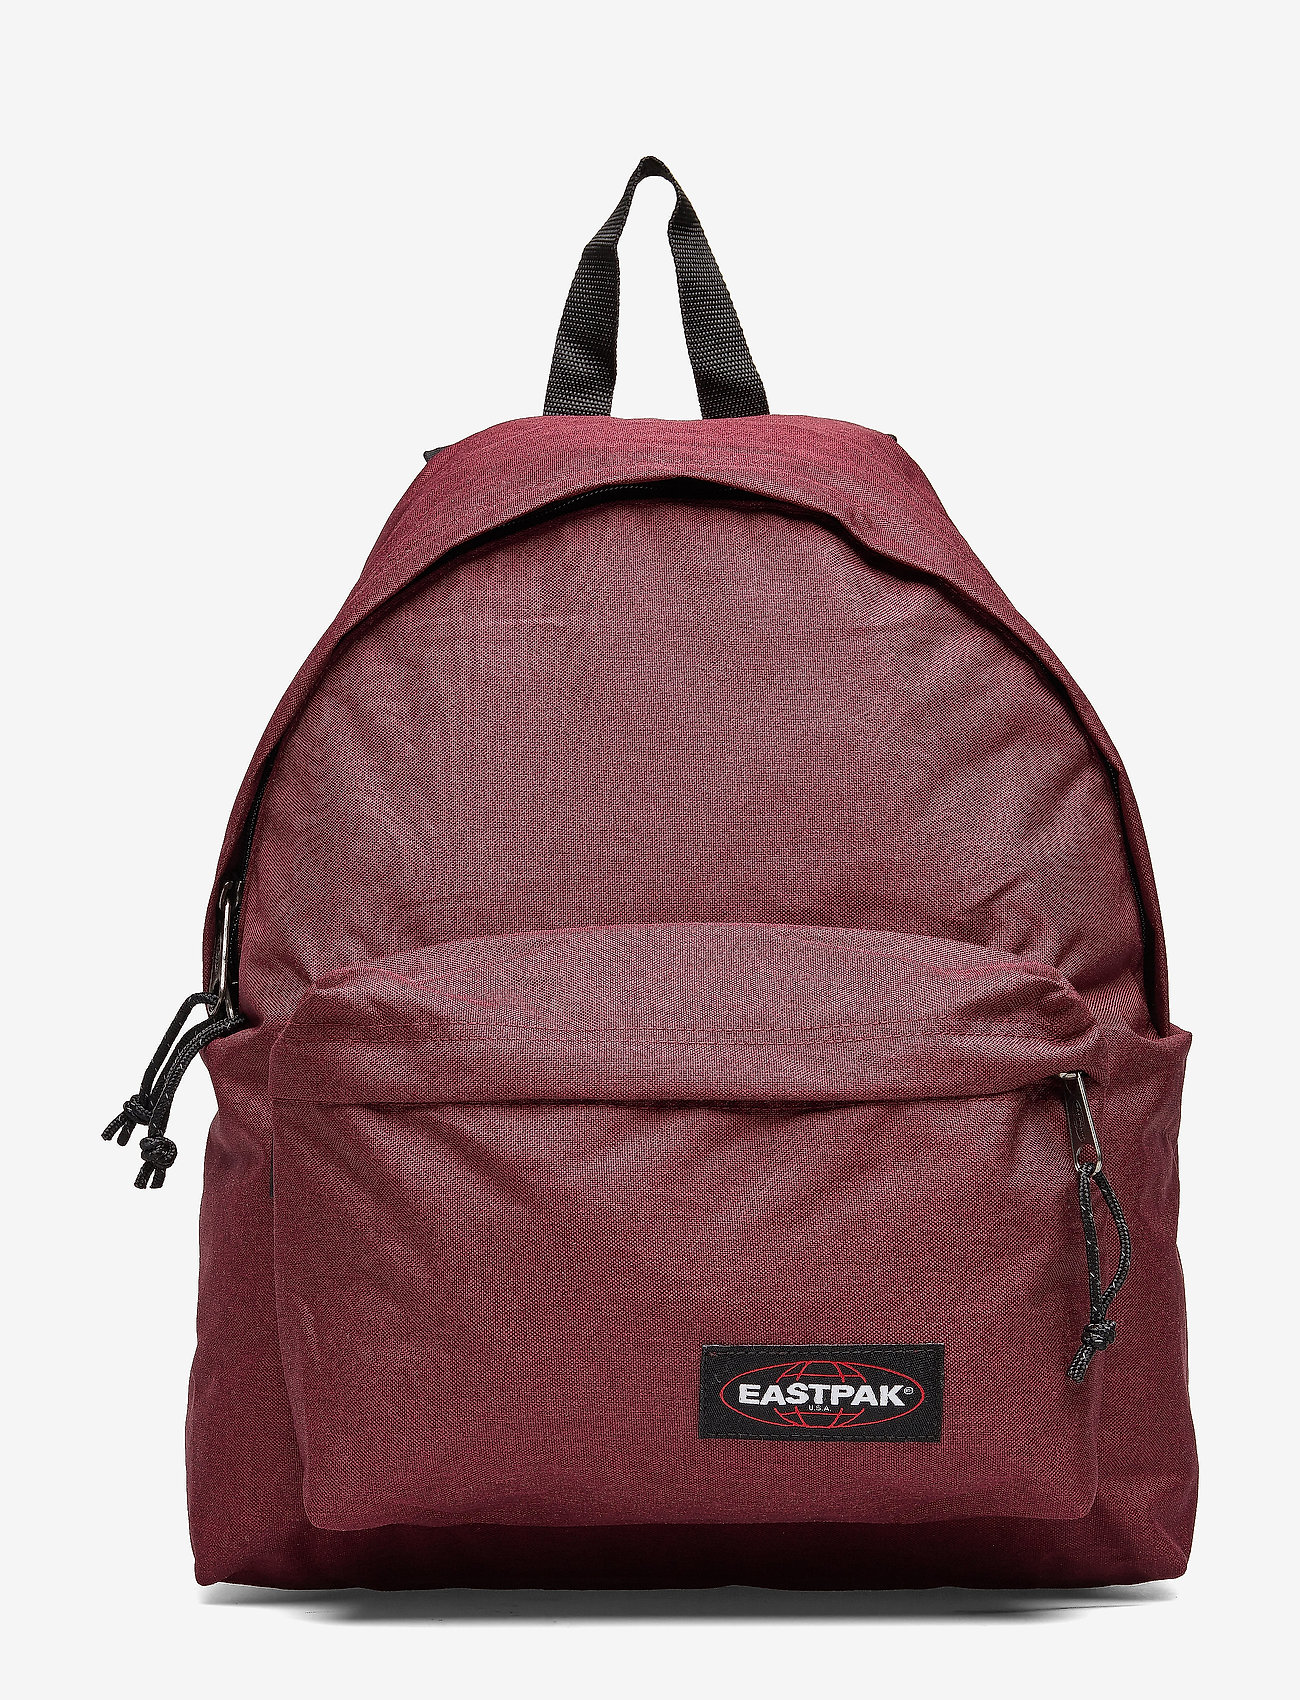 Eastpak - PADDED PAK'R - rucksäcke - crafty wine - 0